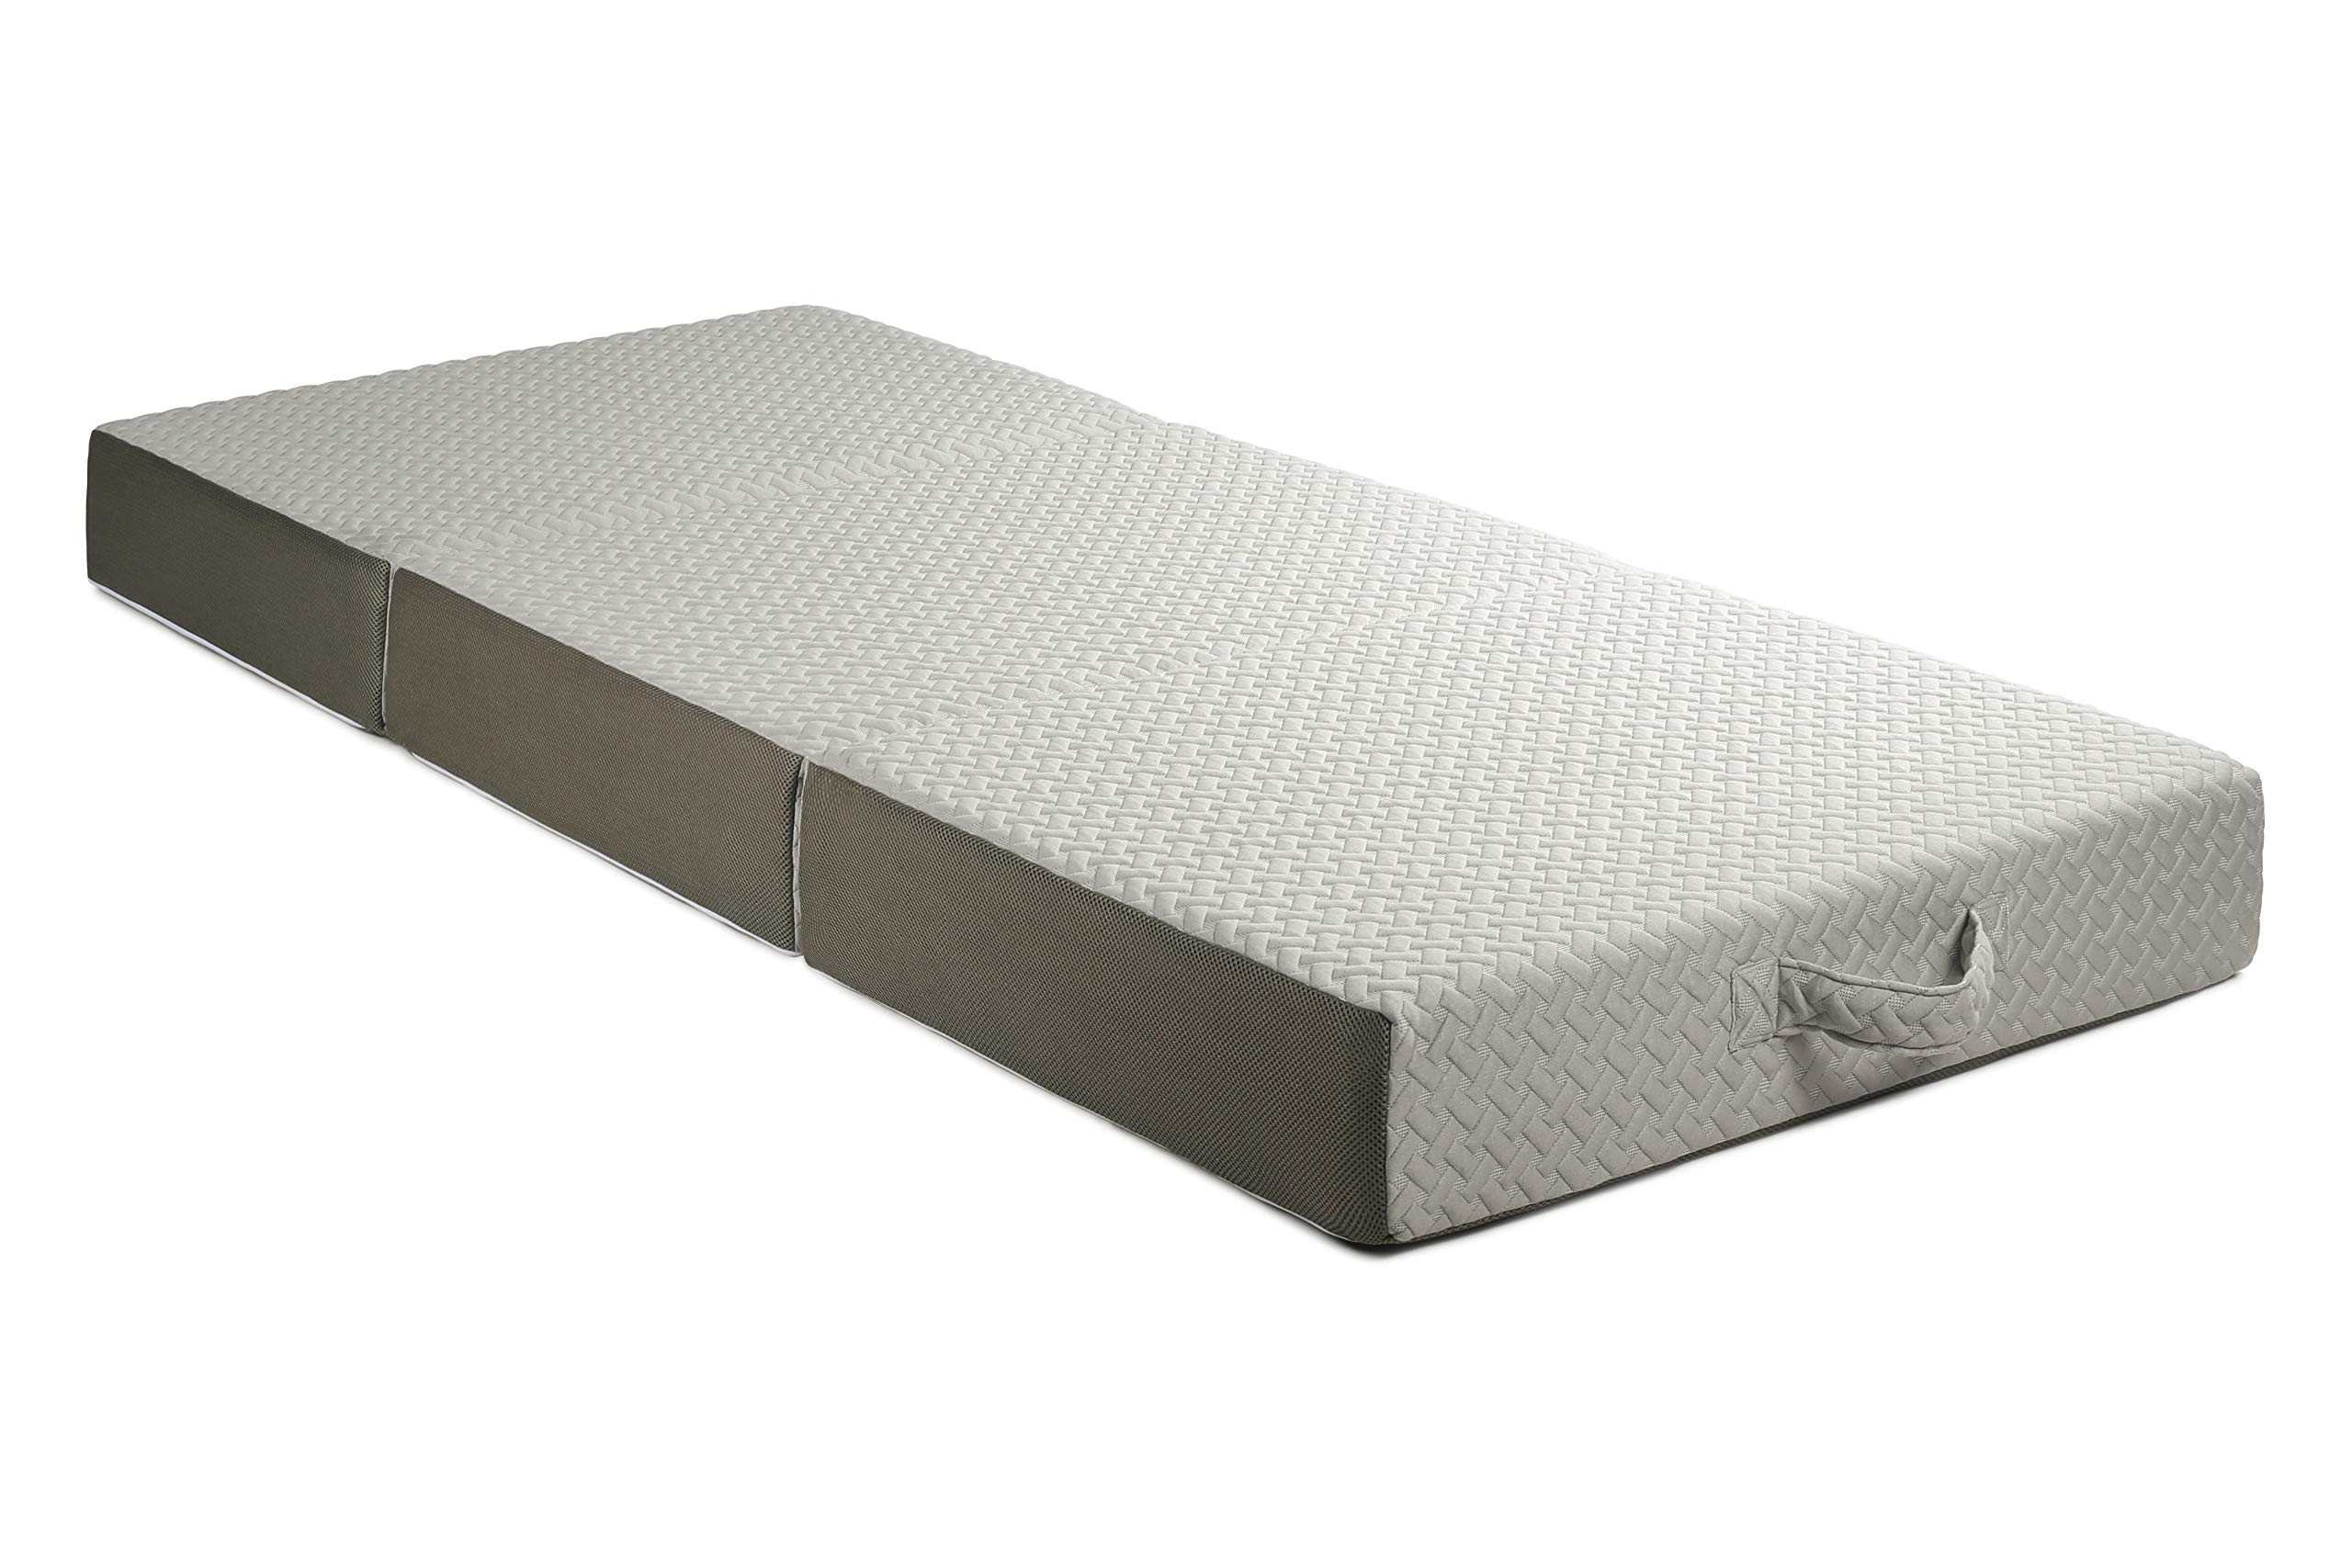 Milliard 6-Inch Memory Foam Tri Folding Mattress with Ultra Soft Removable Cover and Non-Slip Bottom (75 inches x 31 inches) by Milliard